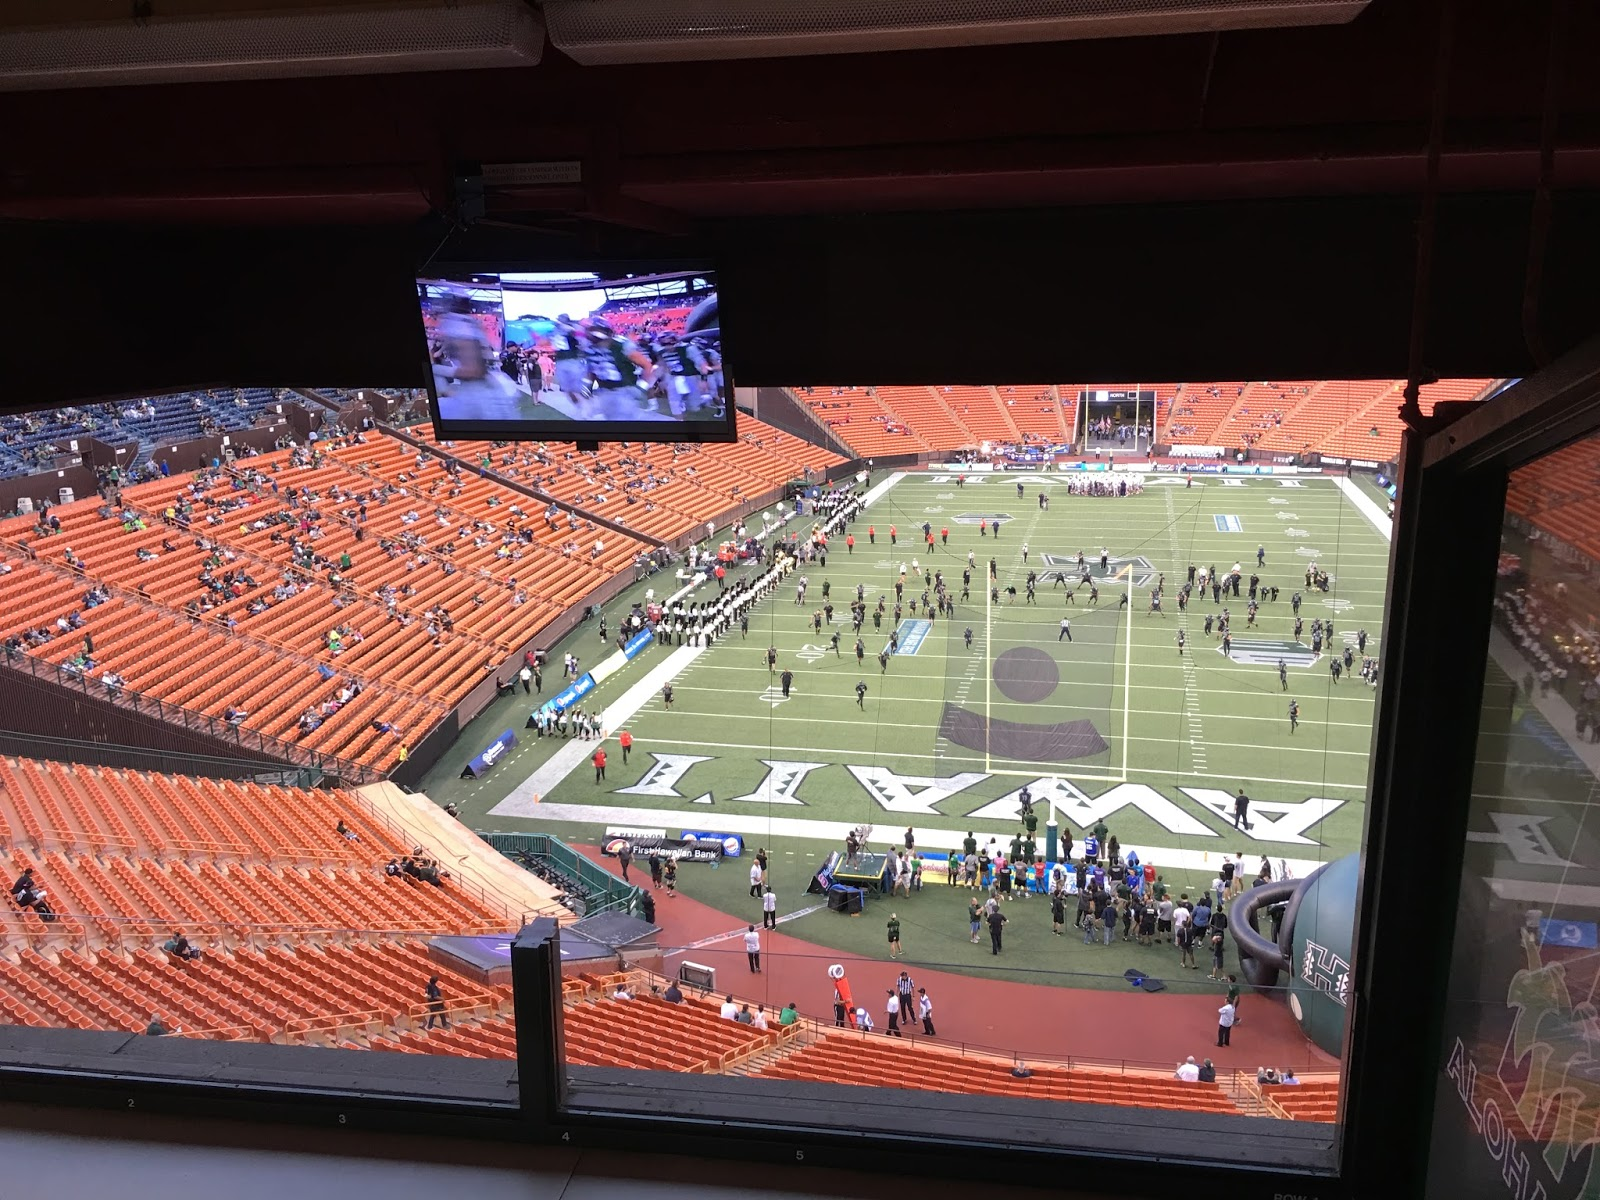 TASTE OF HAWAII: ALOHA STADIUM SKY SUITES - HAWAII WARRIOR FOOTBALL